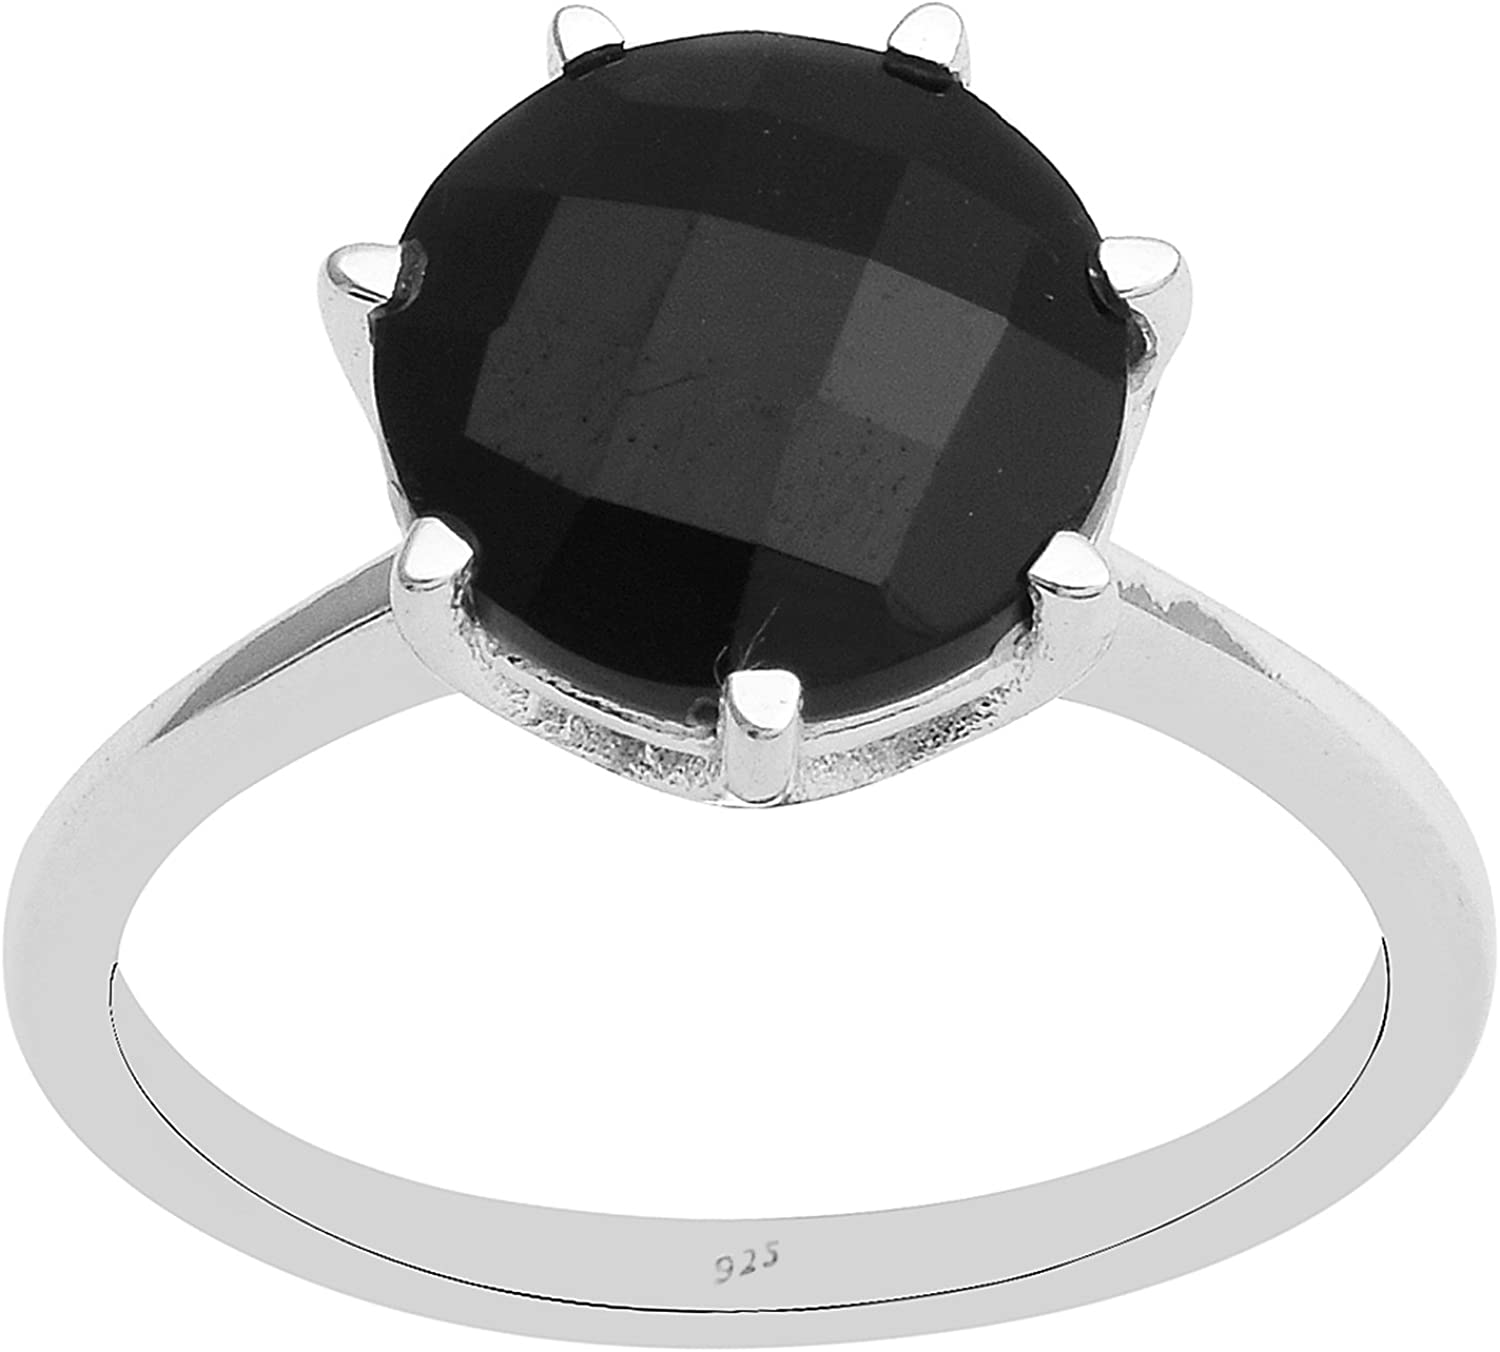 Black Spinel Single Stone 925 Sterling Silver Solitaire Stackable Band Ring